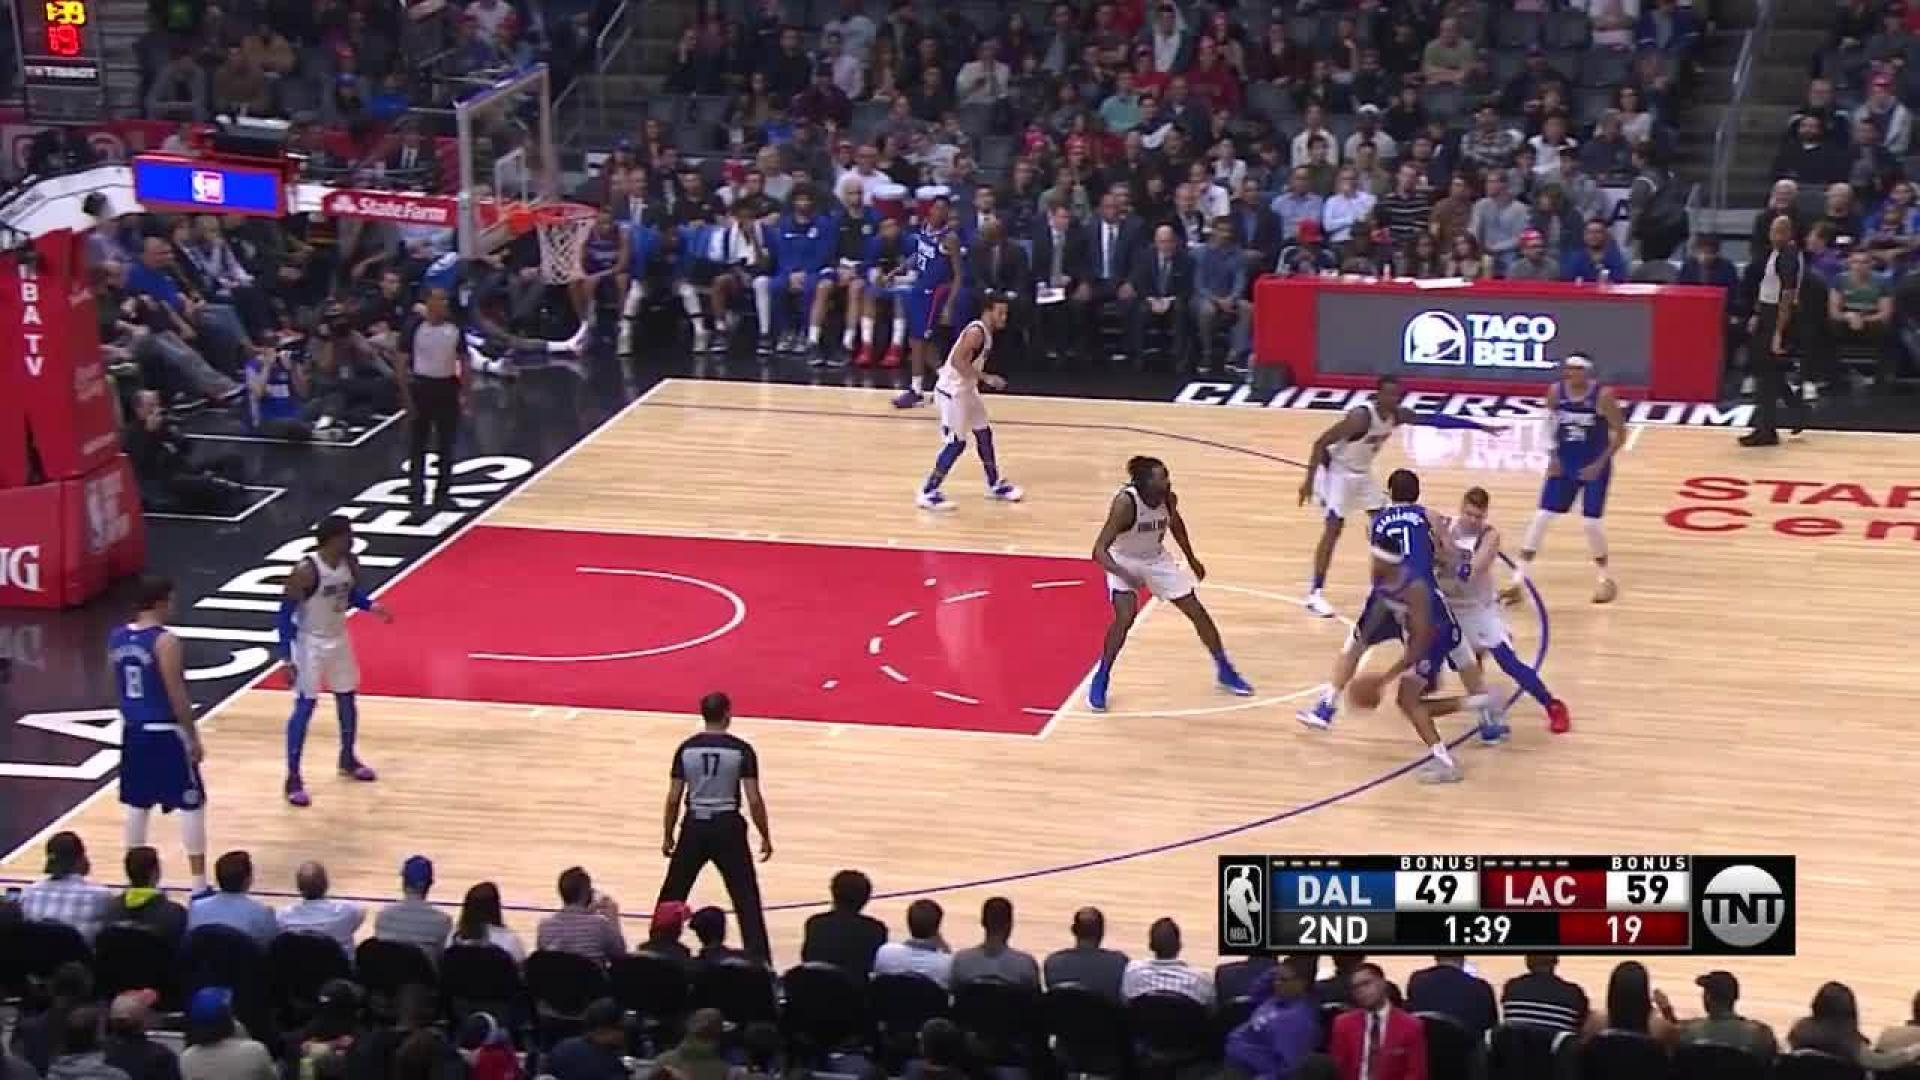 Boban Marjanovic slams home the alley-oop in the second quarter ... 523951370